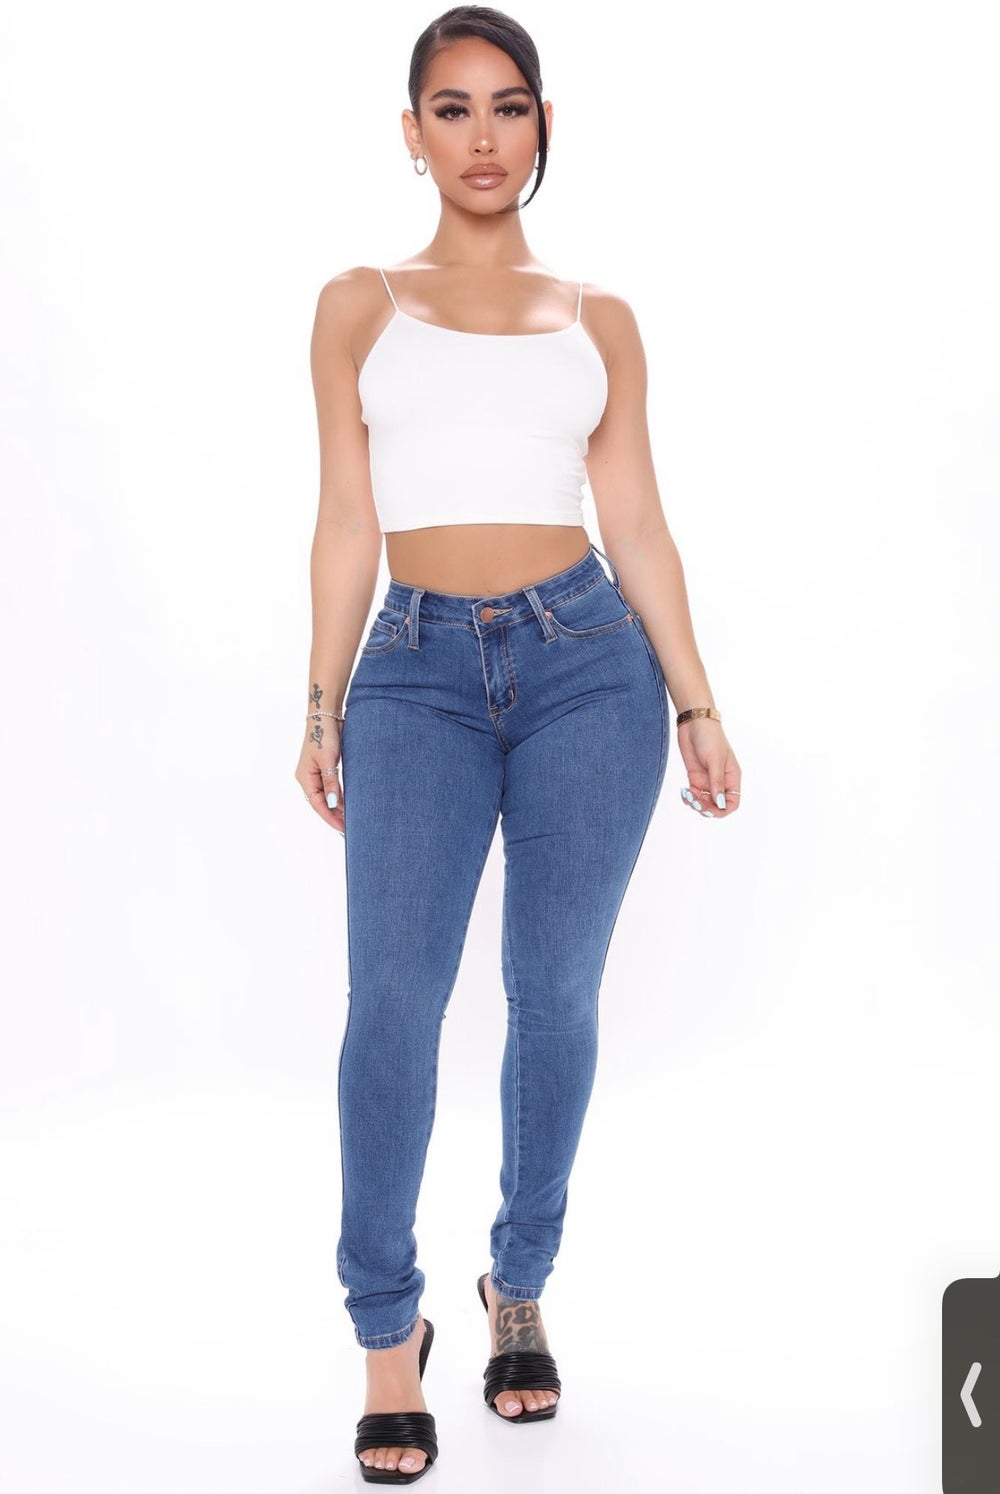 Image of FN Jeans